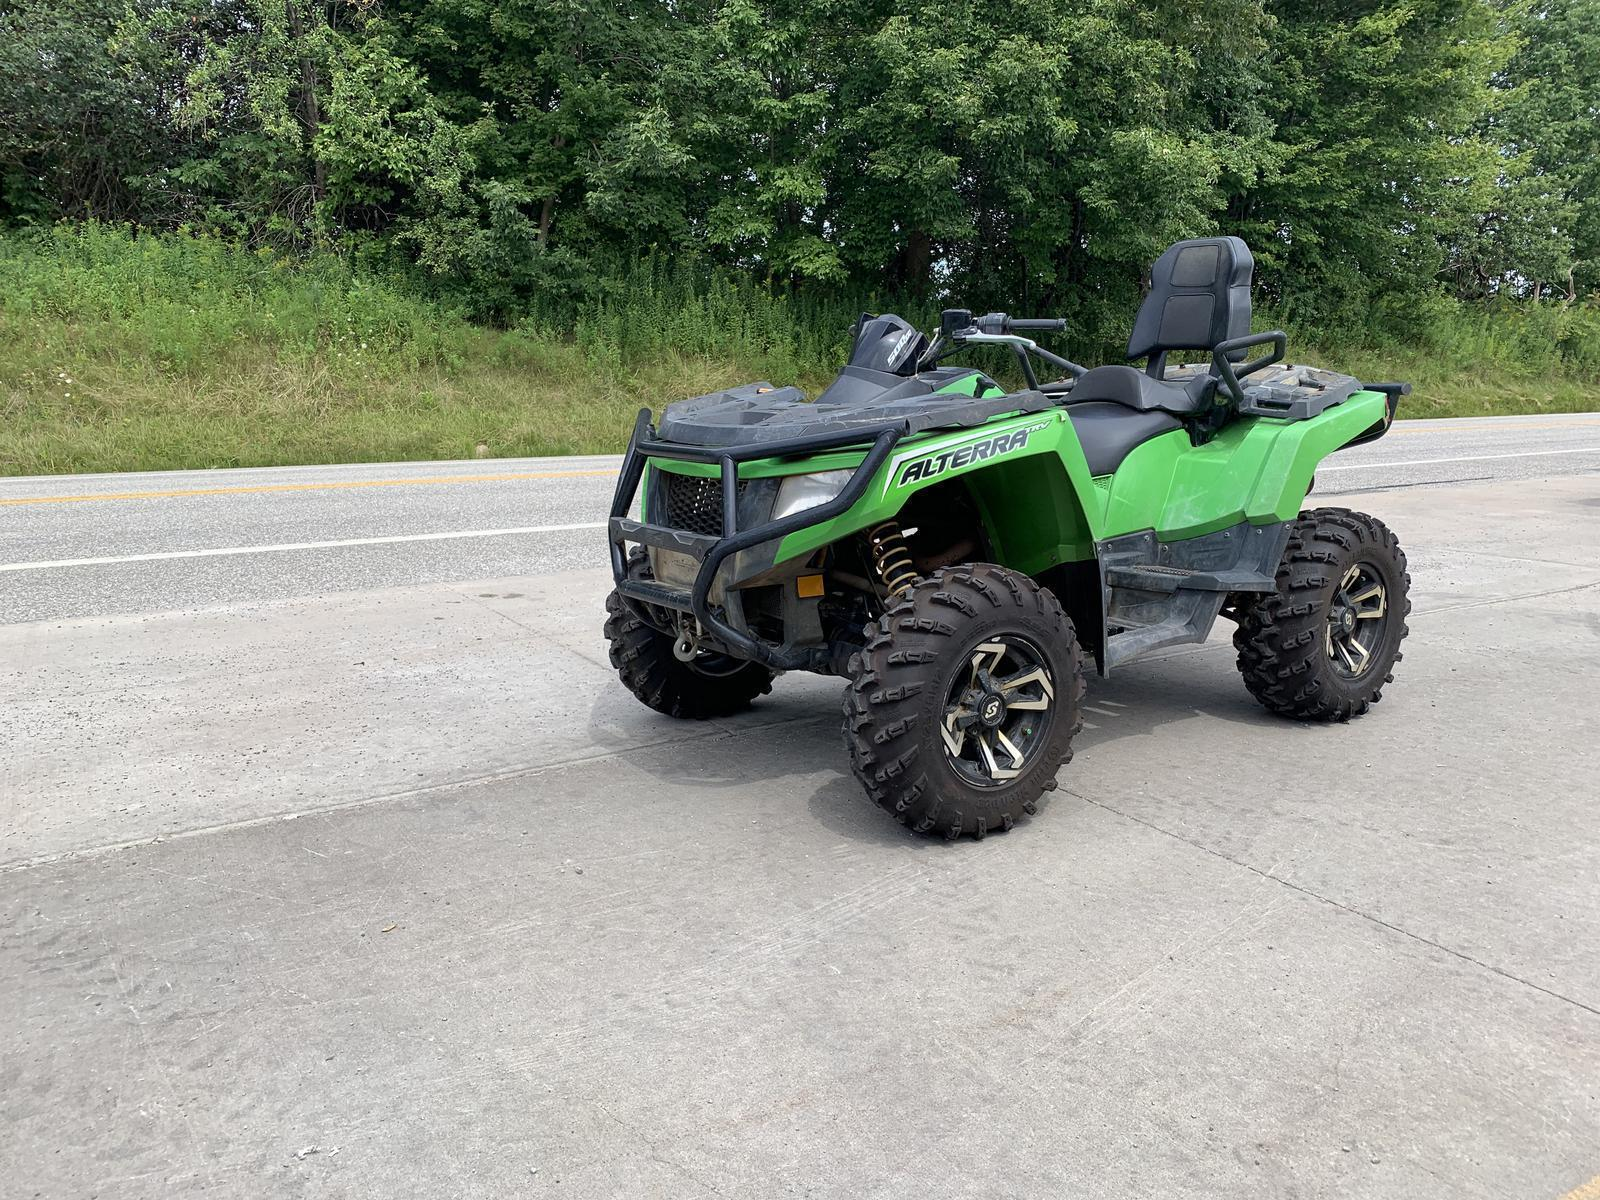 Inventory from Arctic Cat Off-Road Express